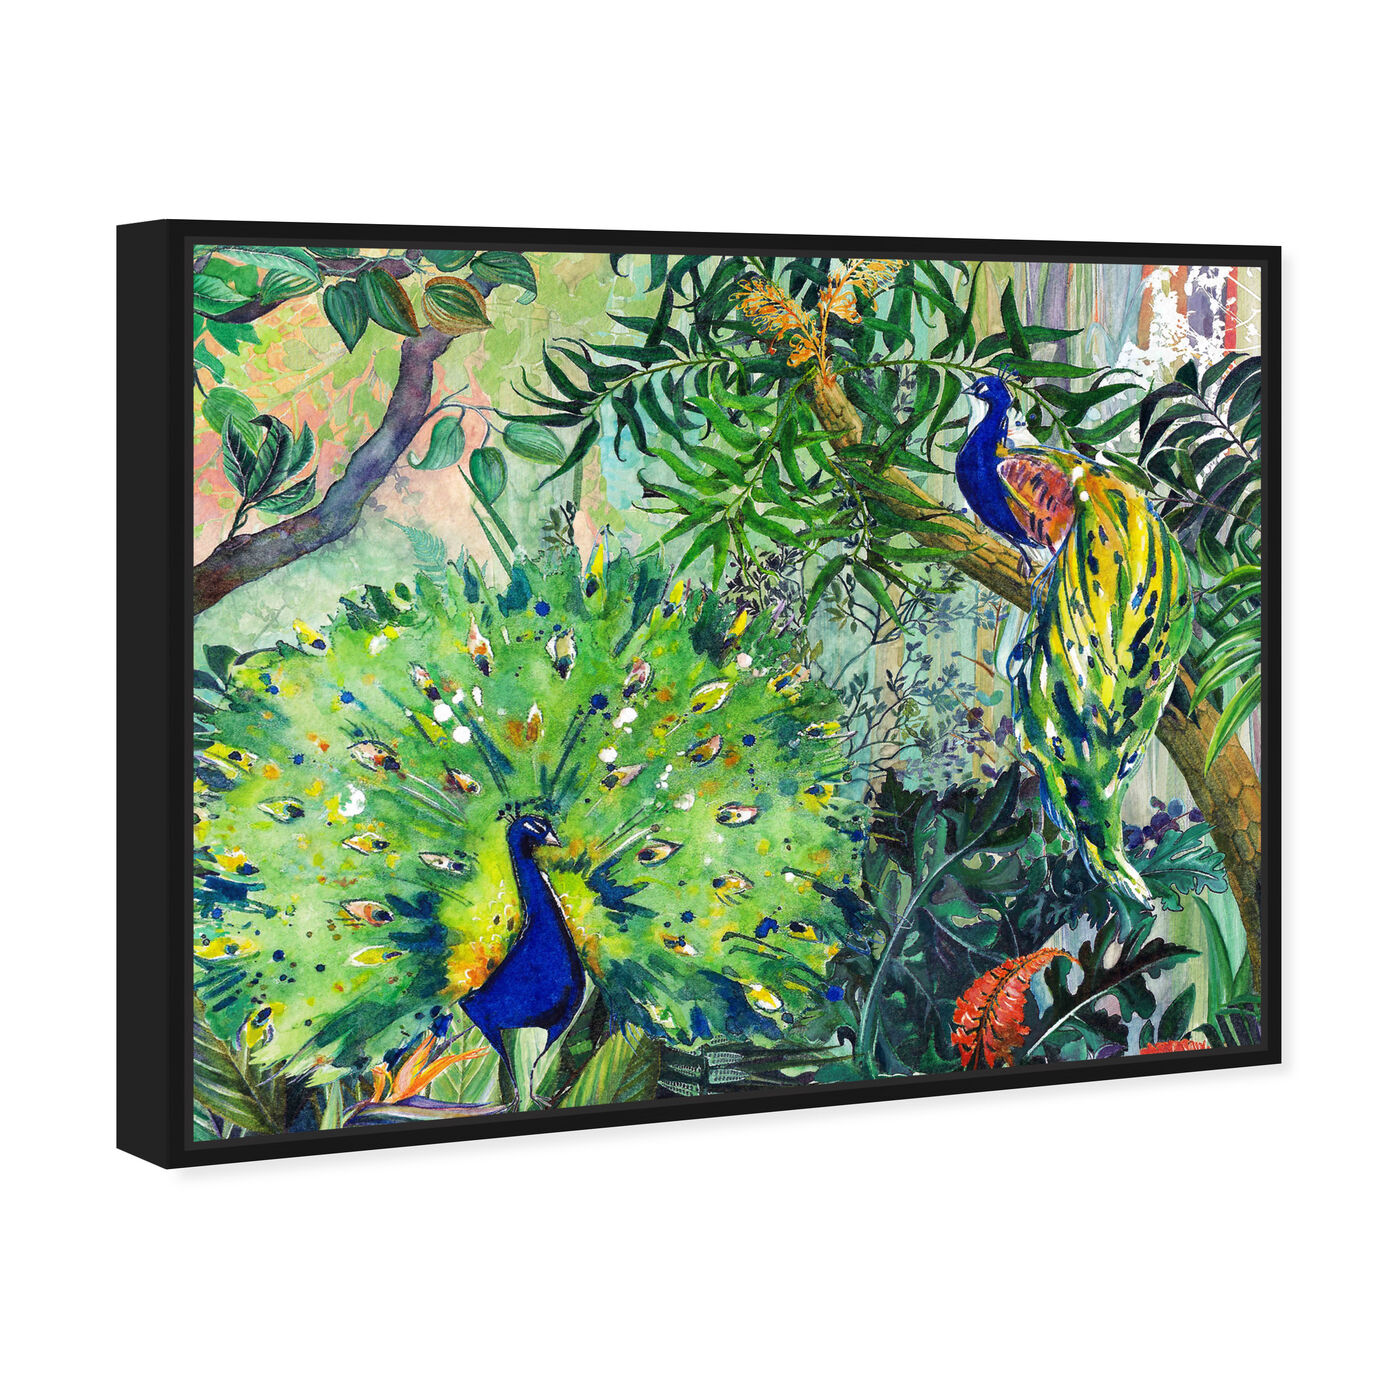 Angled view of Designing with Palms 2 featuring animals and birds art.